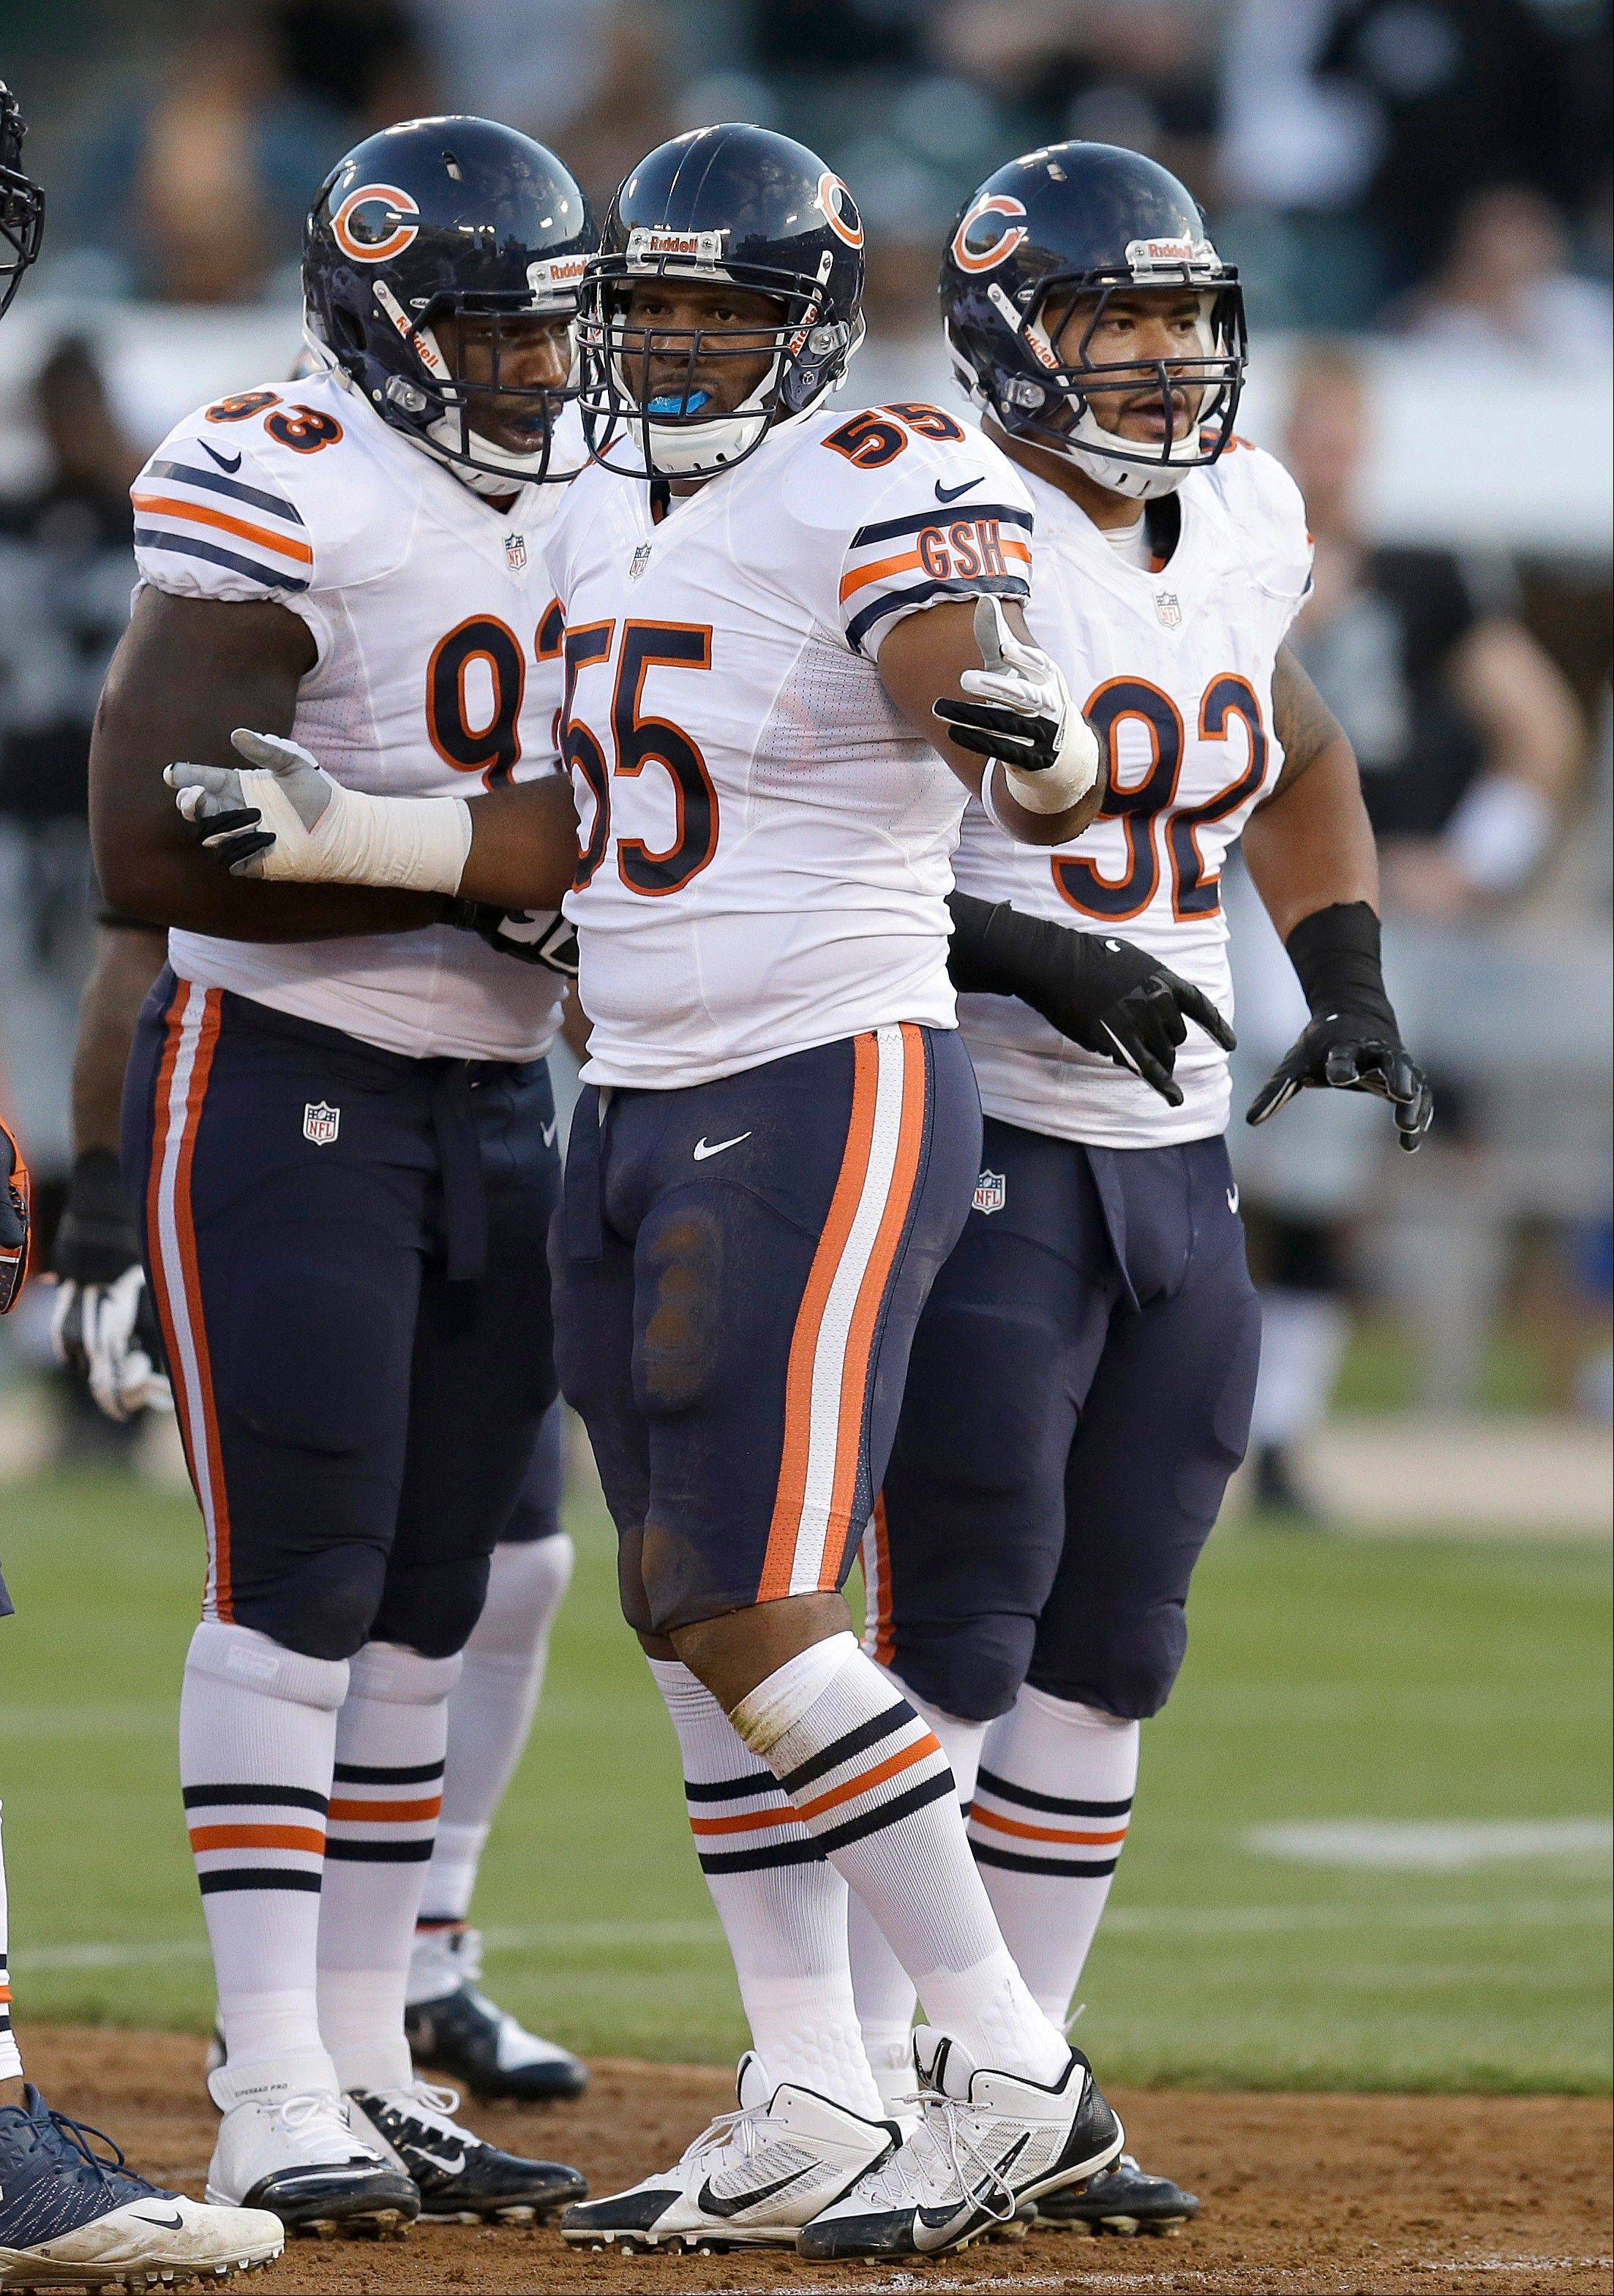 Bears defensive tackle Nate Collins (left), discussing things with Lance Briggs (55) and Stephen Paea during a preseason game, will be in the spotlight Sunday as he takes over for the injured Henry Melton.